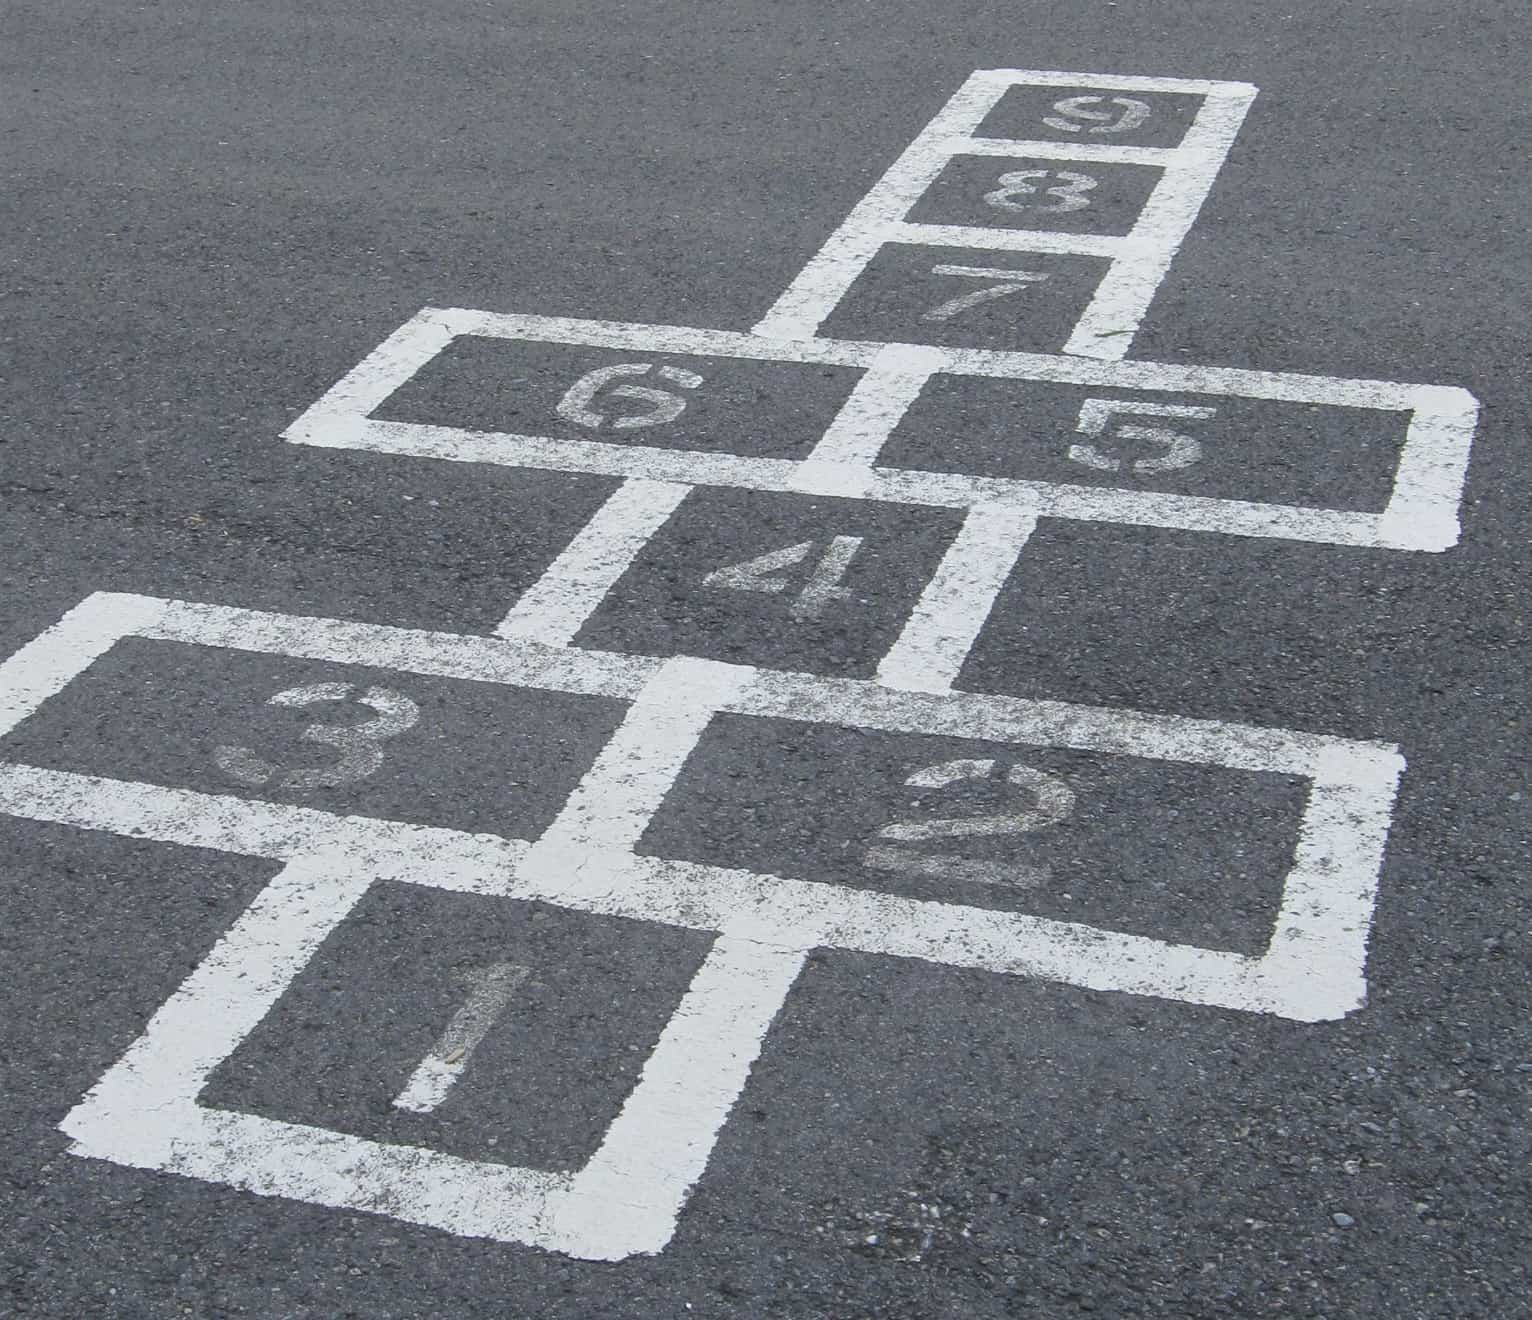 Housing Market Is Like Playing Hopscotch